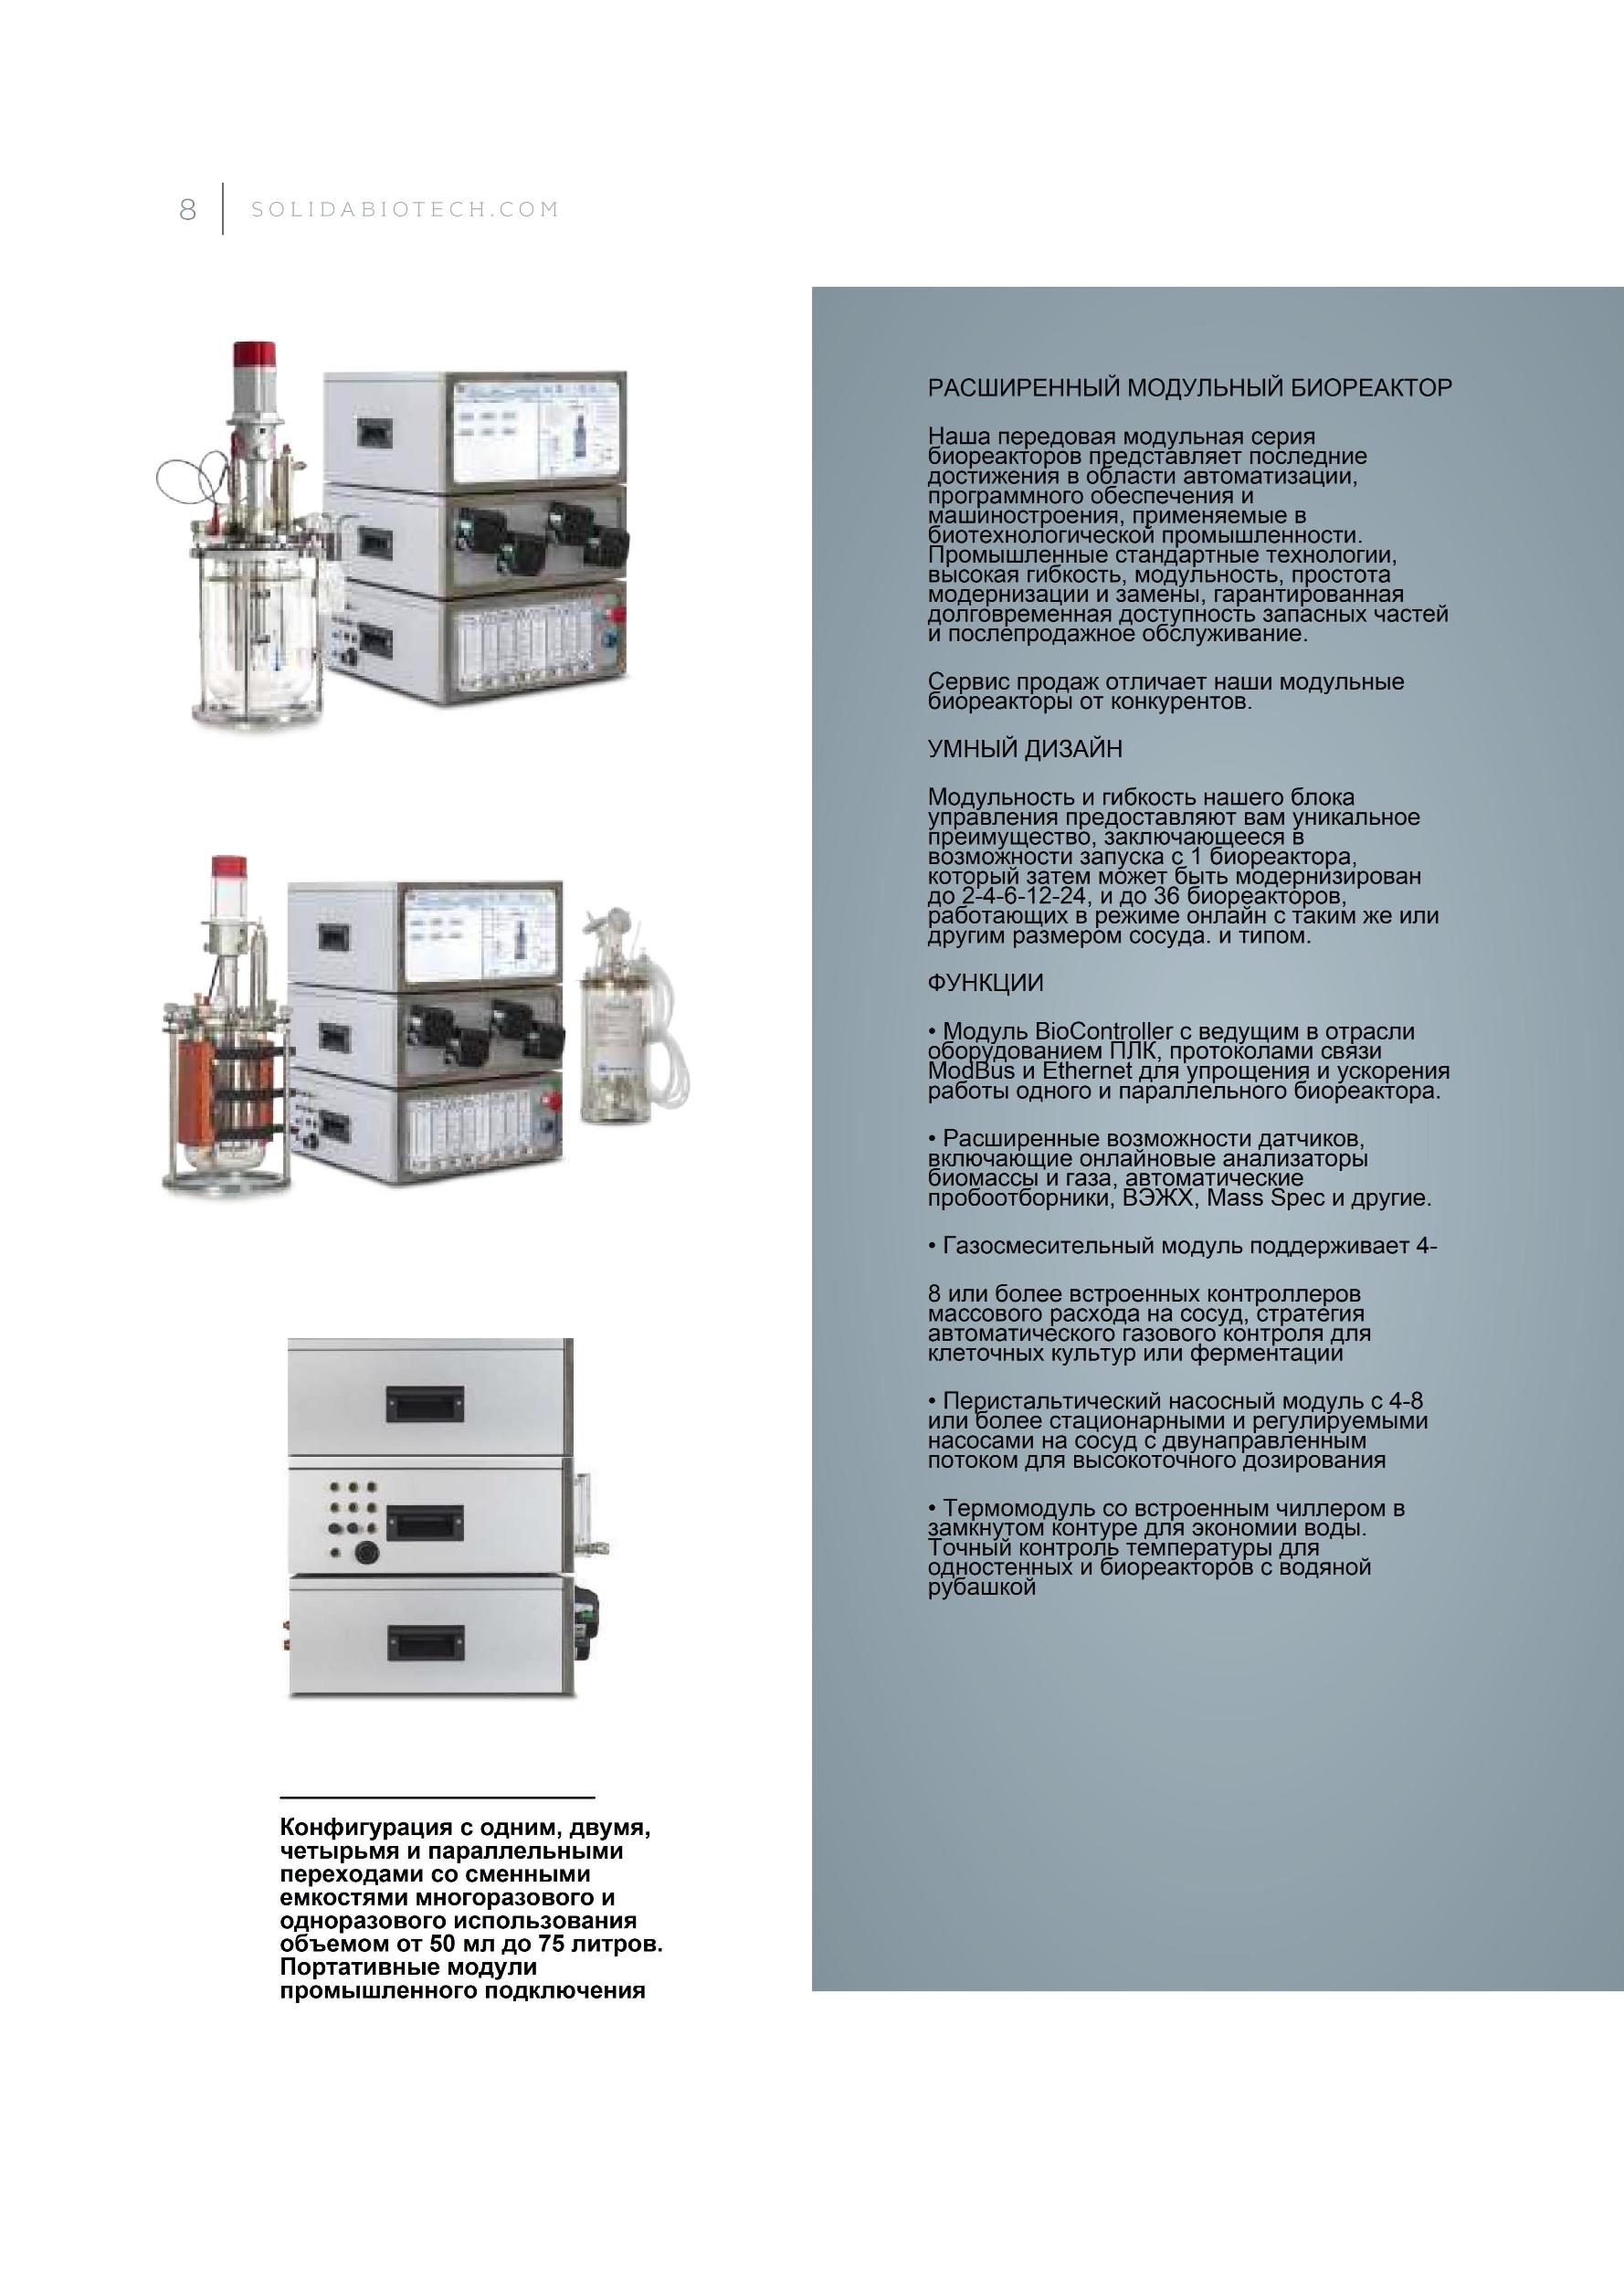 General Catalogue Solida Biotech GmBH2_compressed (2 - 0006